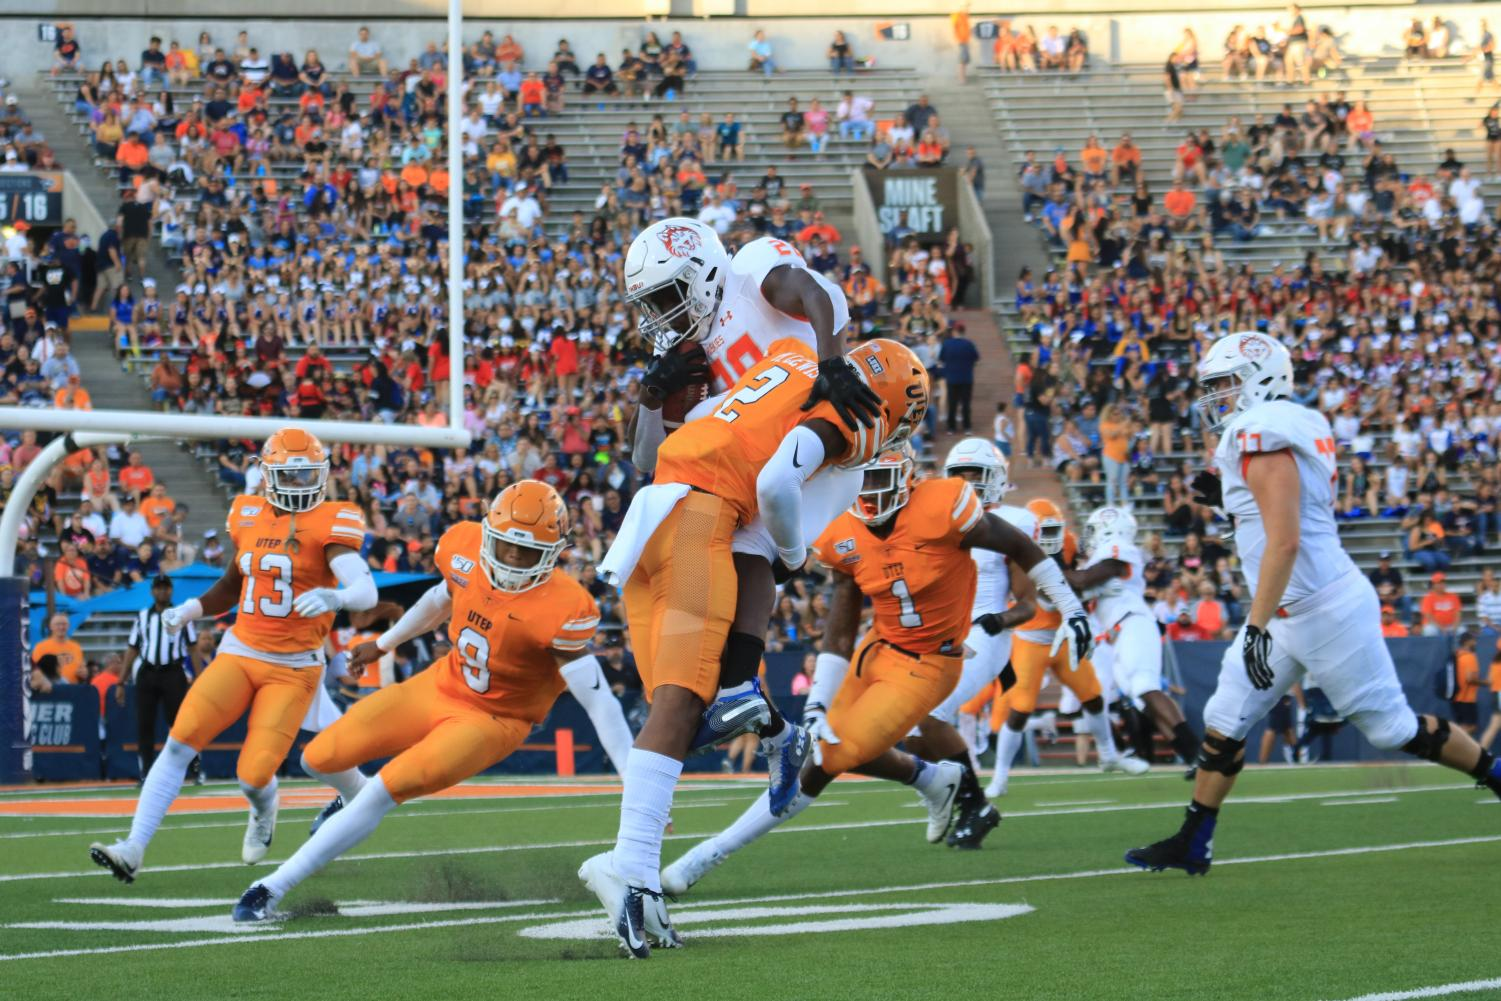 Senior saftey Michael Lewis makes a tackle during the Miners 36-34 win over Houston Baptist.